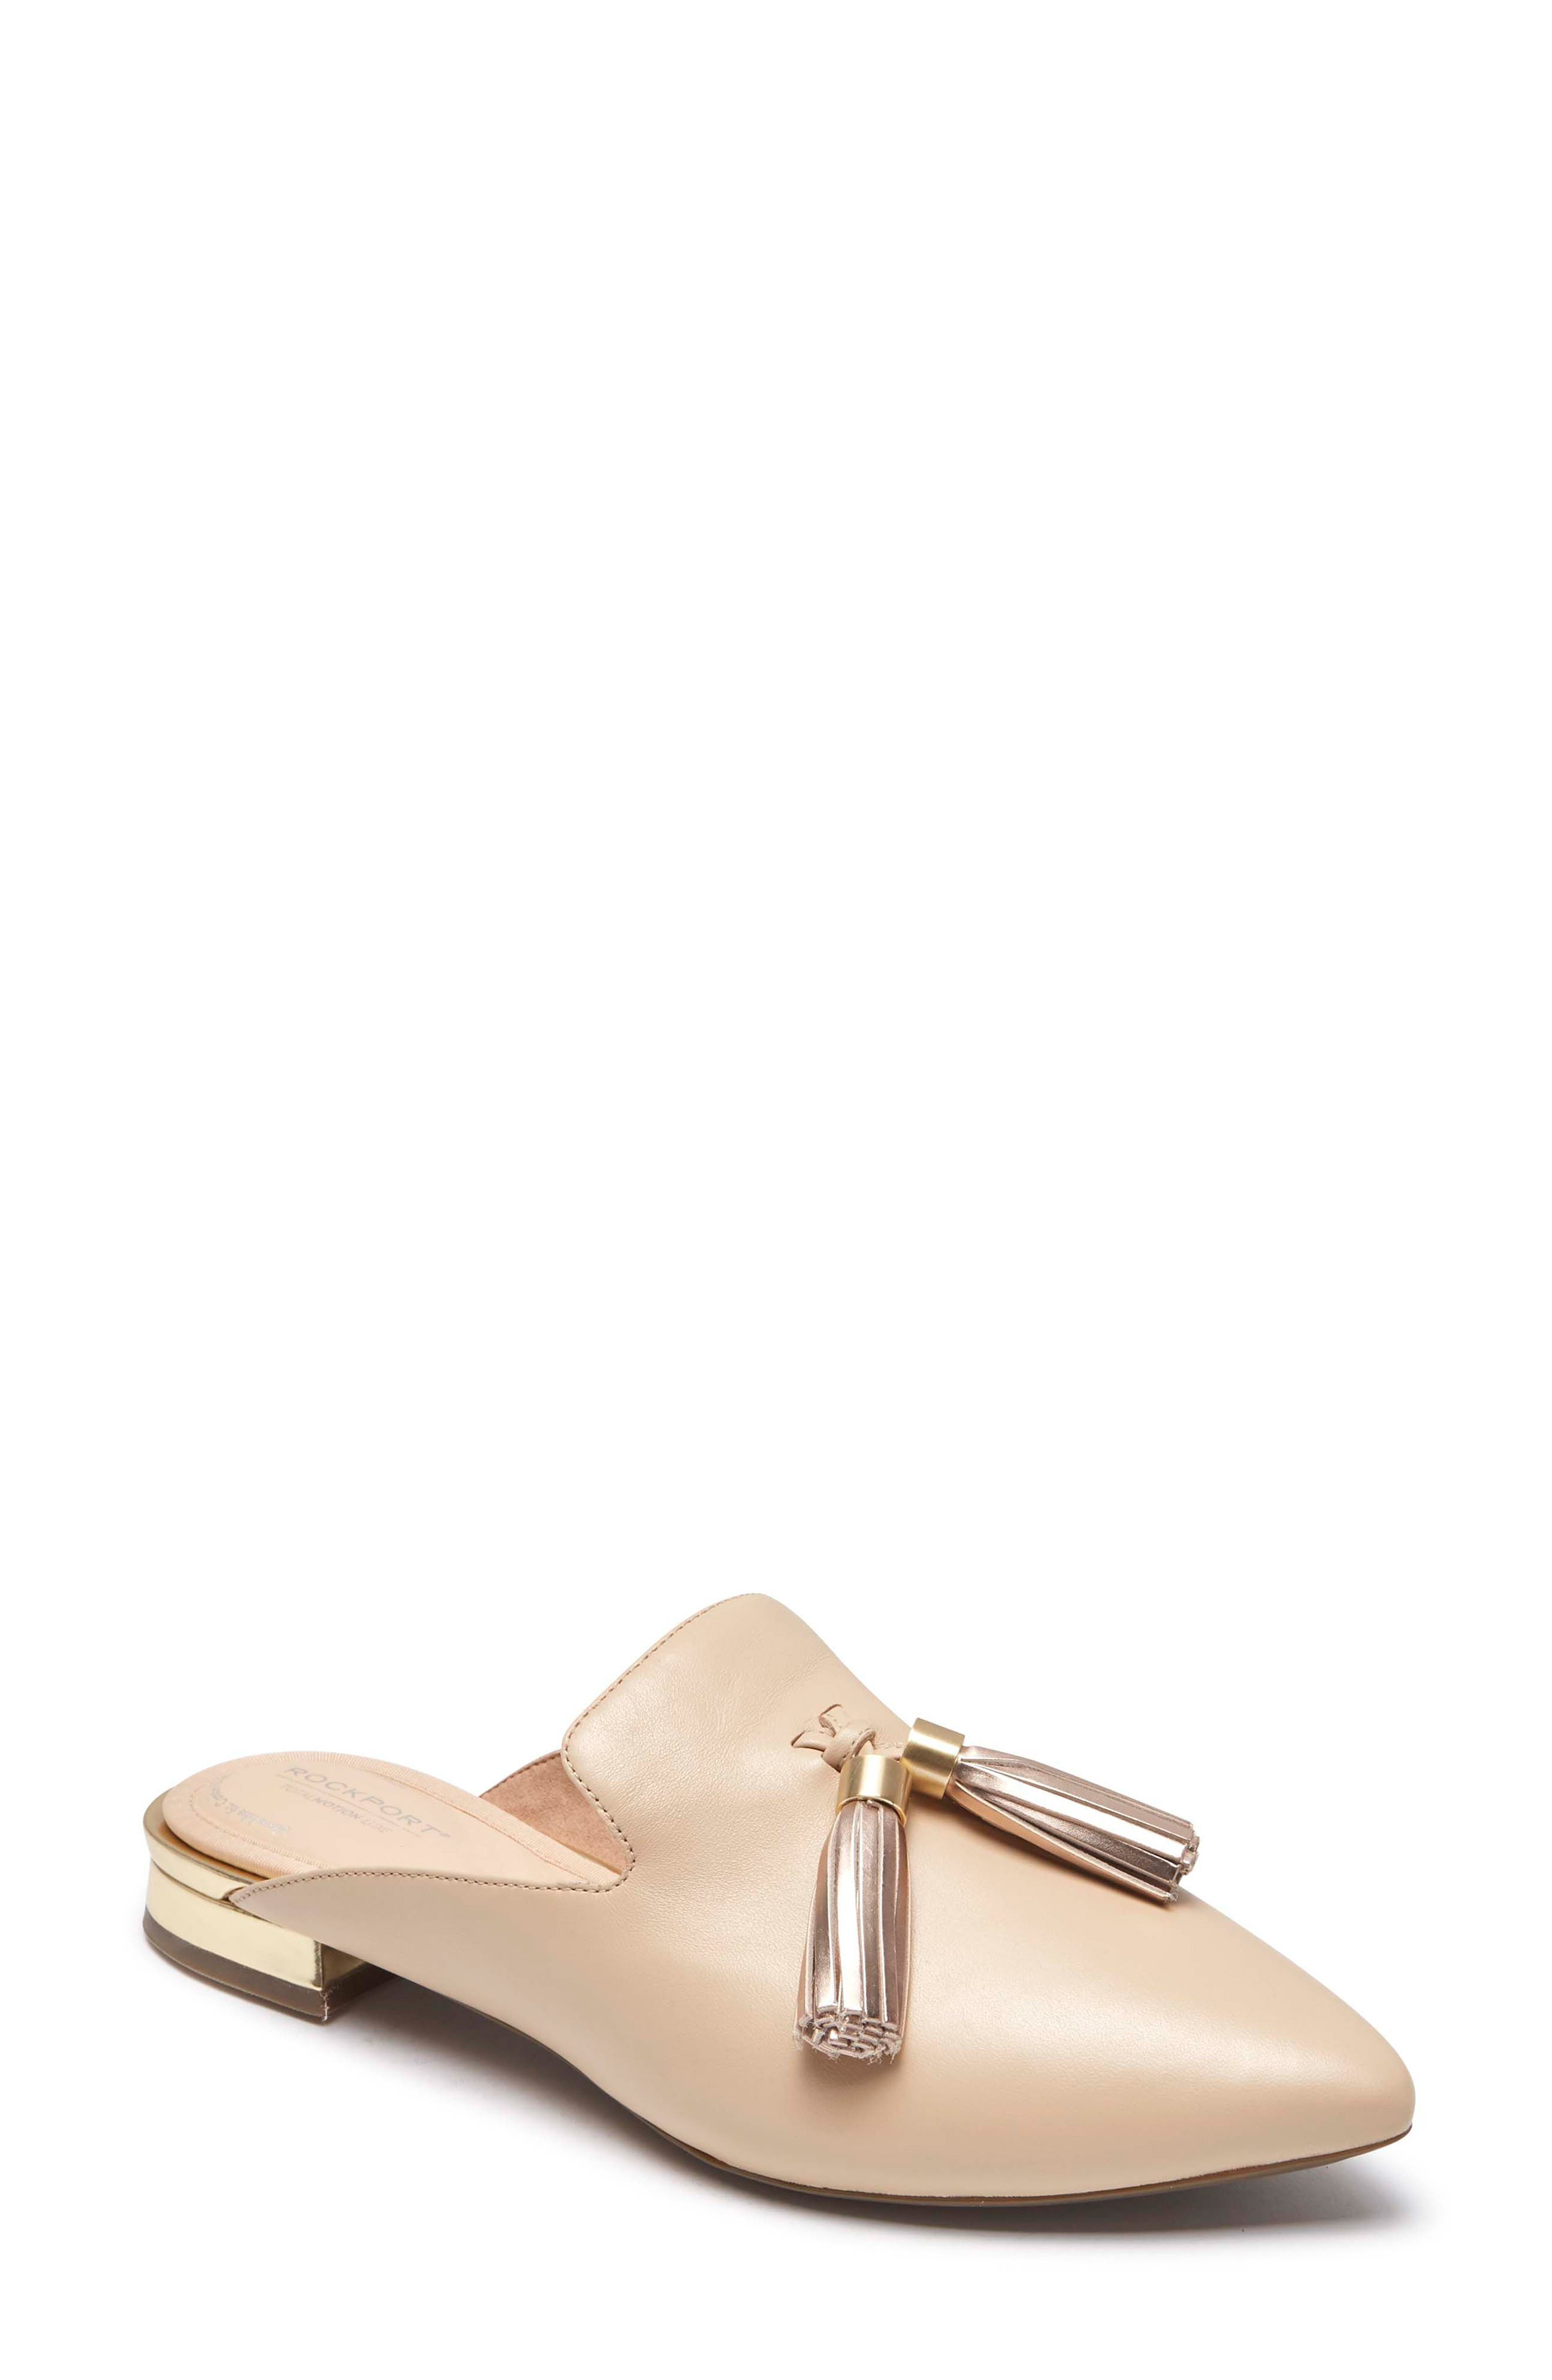 Total Motion Zuly Tassel Mule,                             Main thumbnail 1, color,                             Latte Leather